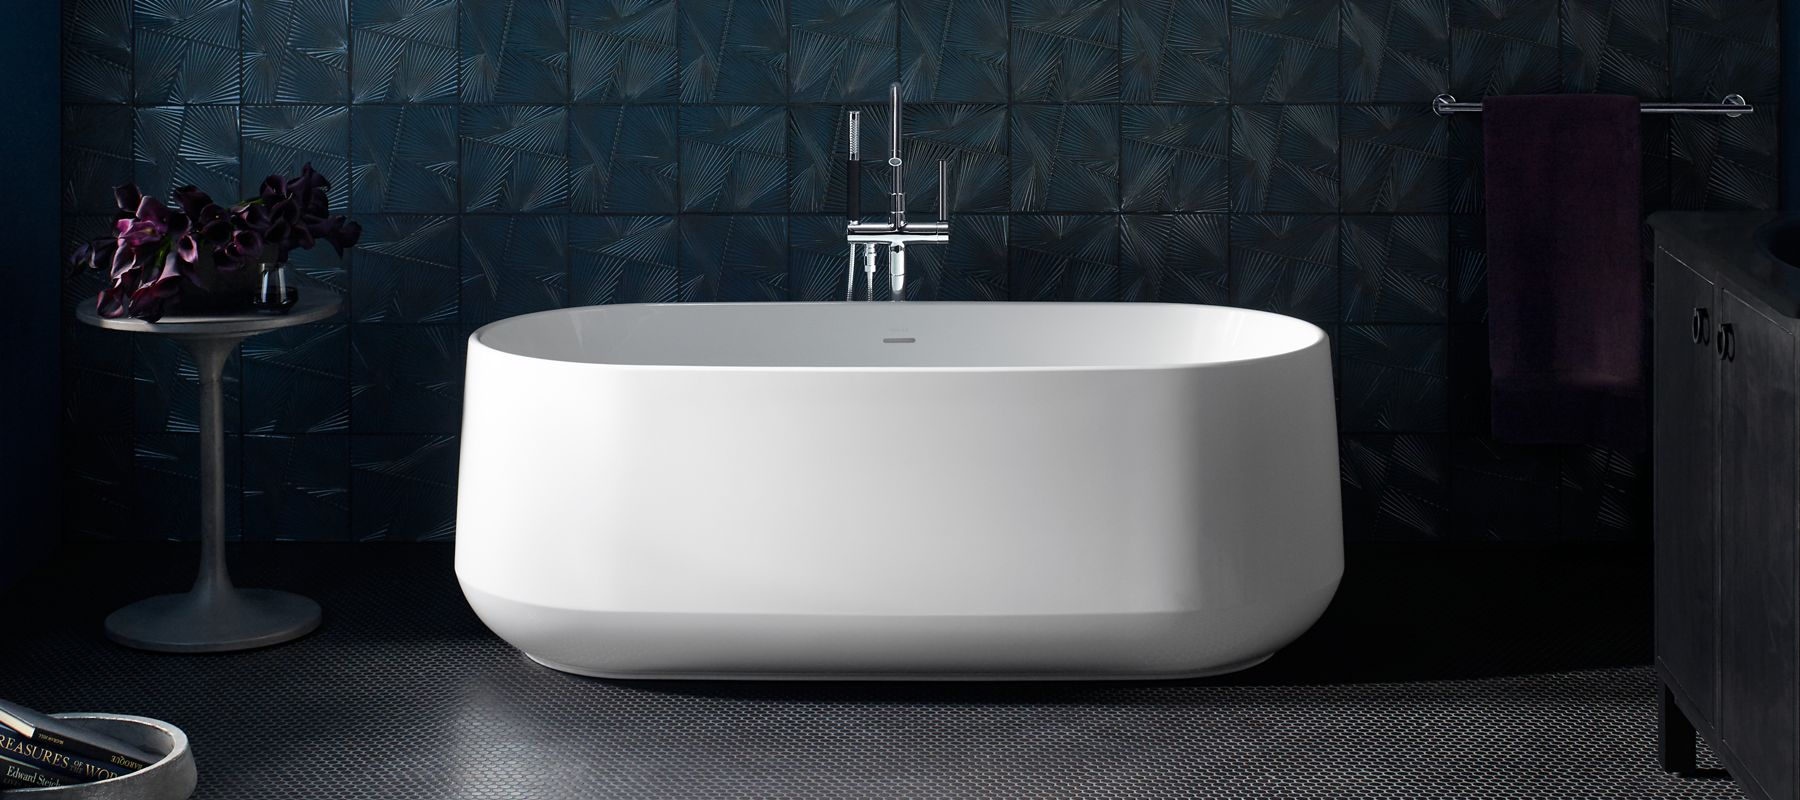 Bathtub Won T Drain Standing Water: Bathtubs, Whirlpool, Bathing Products